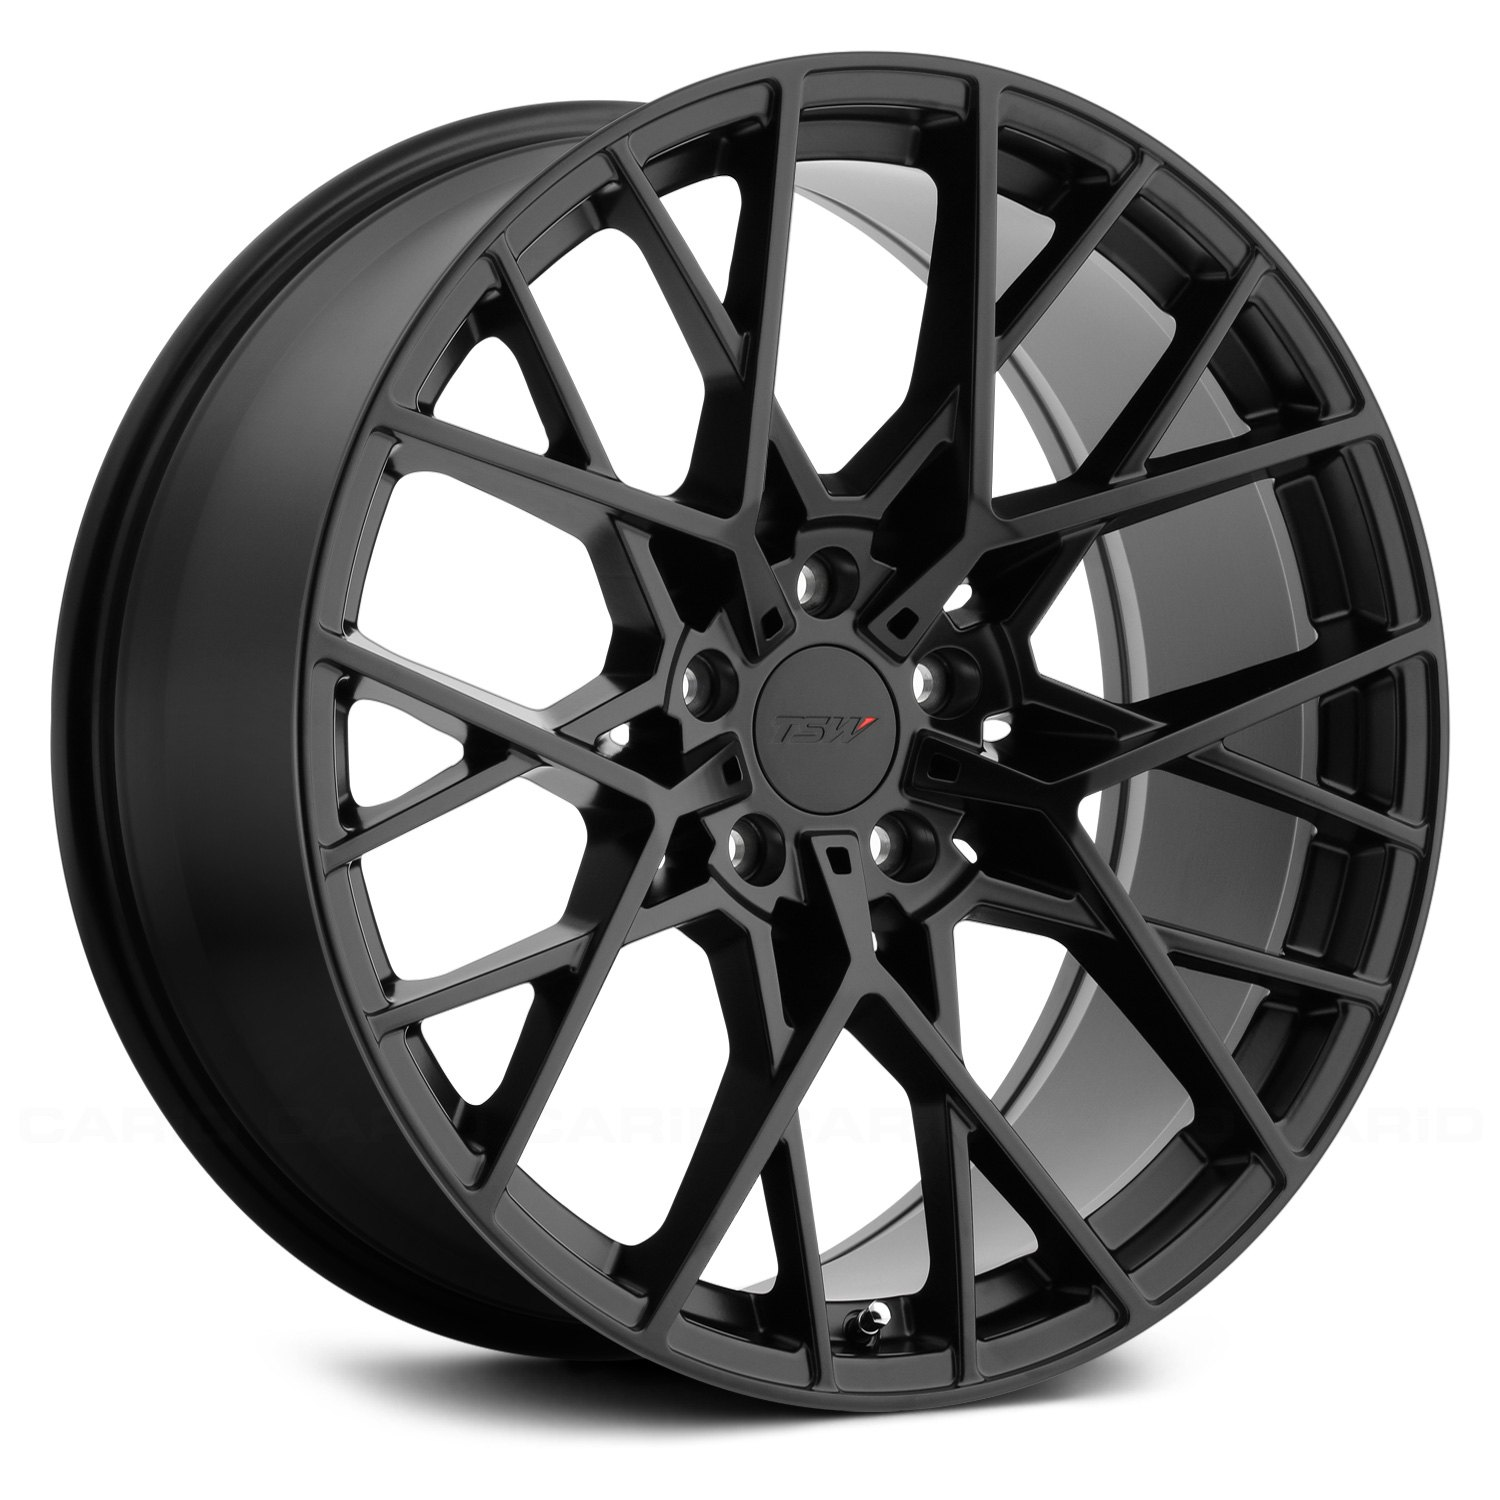 Tsw 174 Sebring Wheels Matte Black Rims